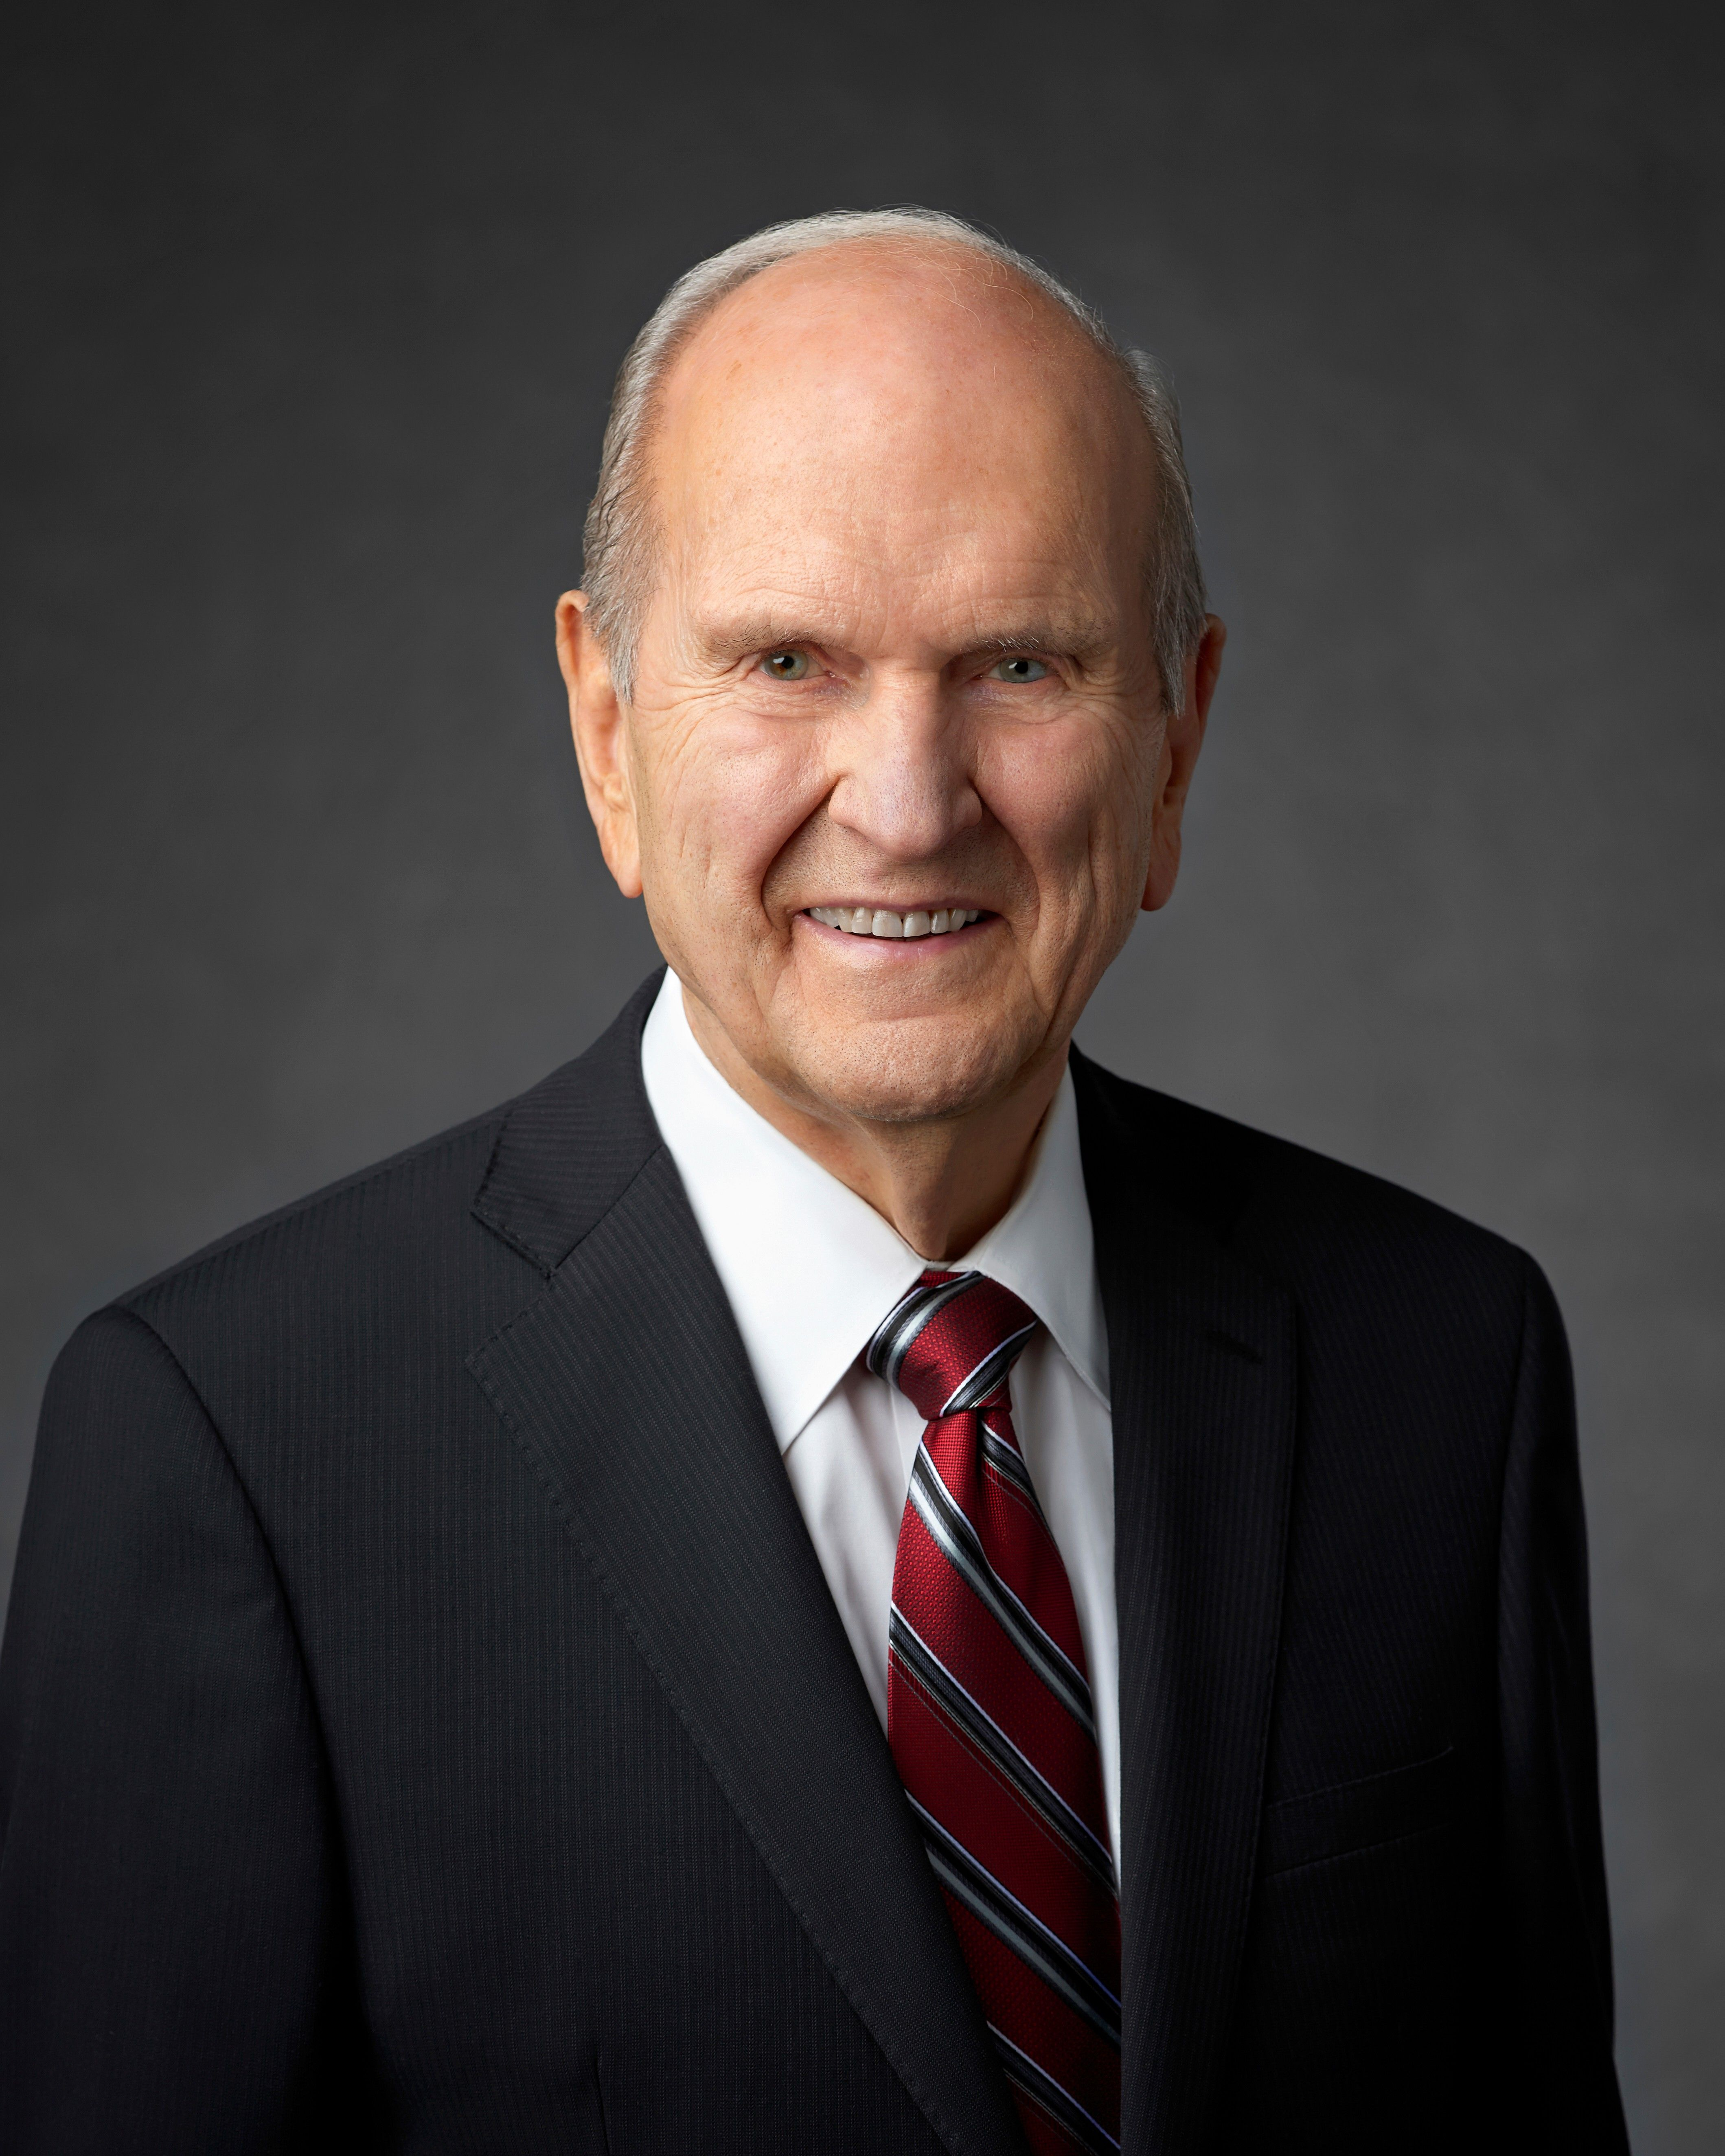 The official portrait of Russell M. Nelson.